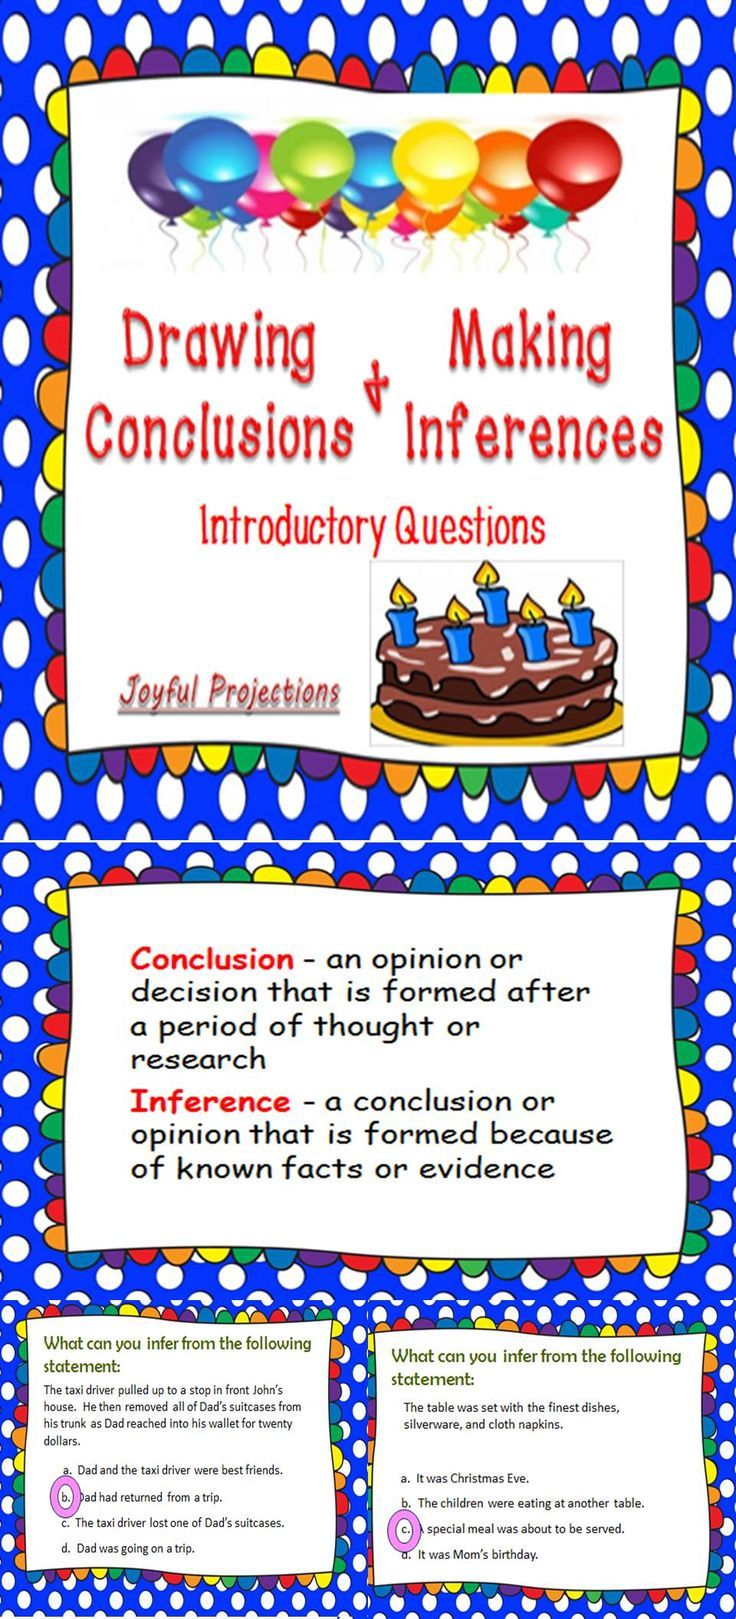 Introduce Drawing Conclusions and Making Inferences with these sample scenarios.